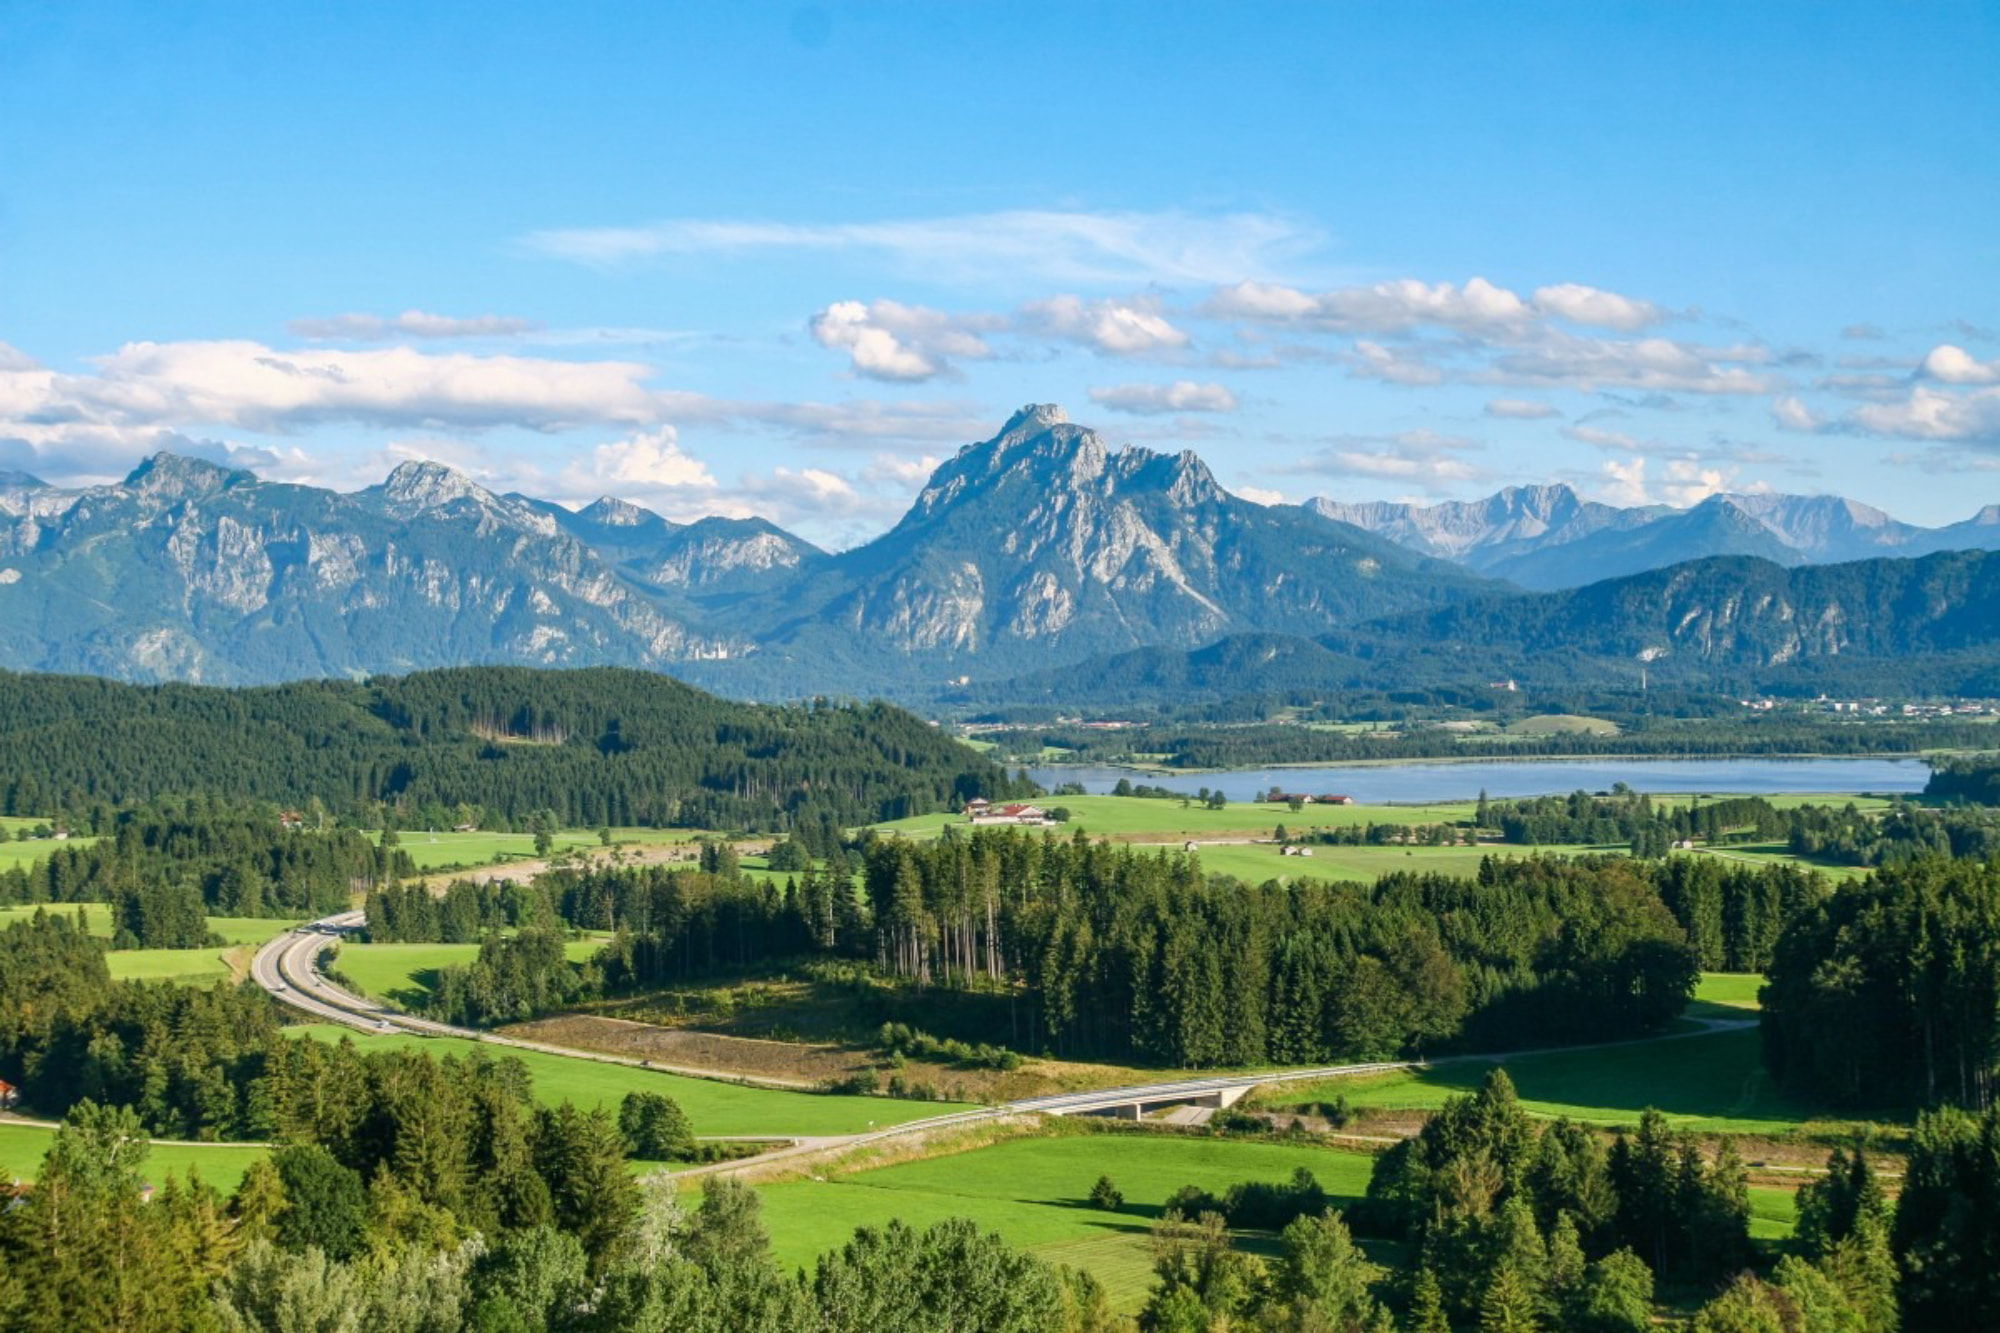 Getting to The Bavarian Alps, Germany